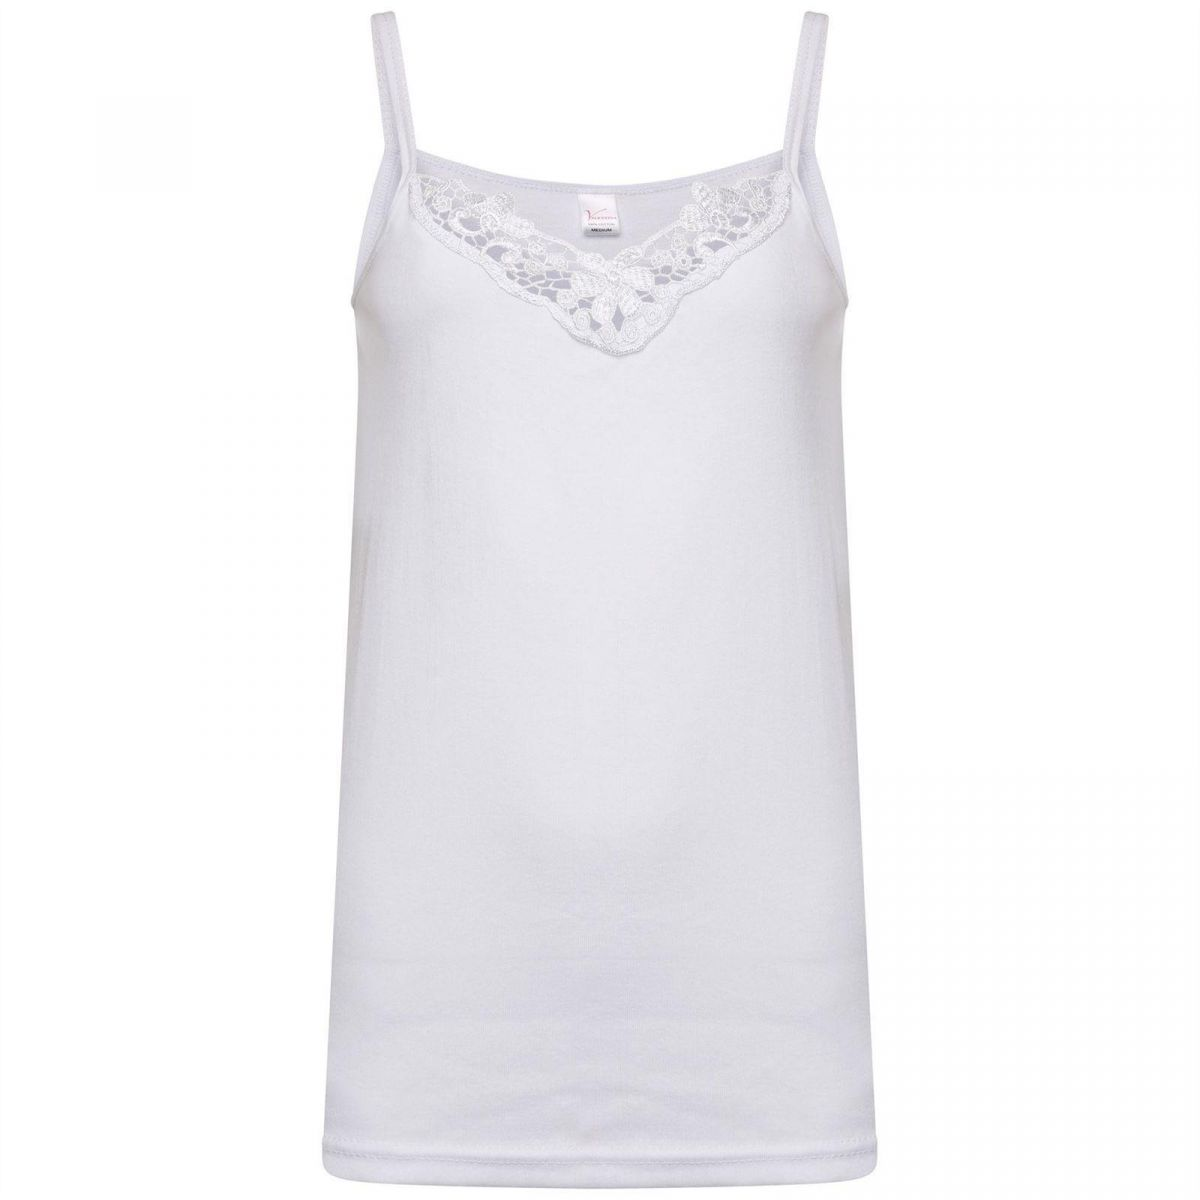 Accessories | Women's 100% Cotton Lace Trim Tank Top